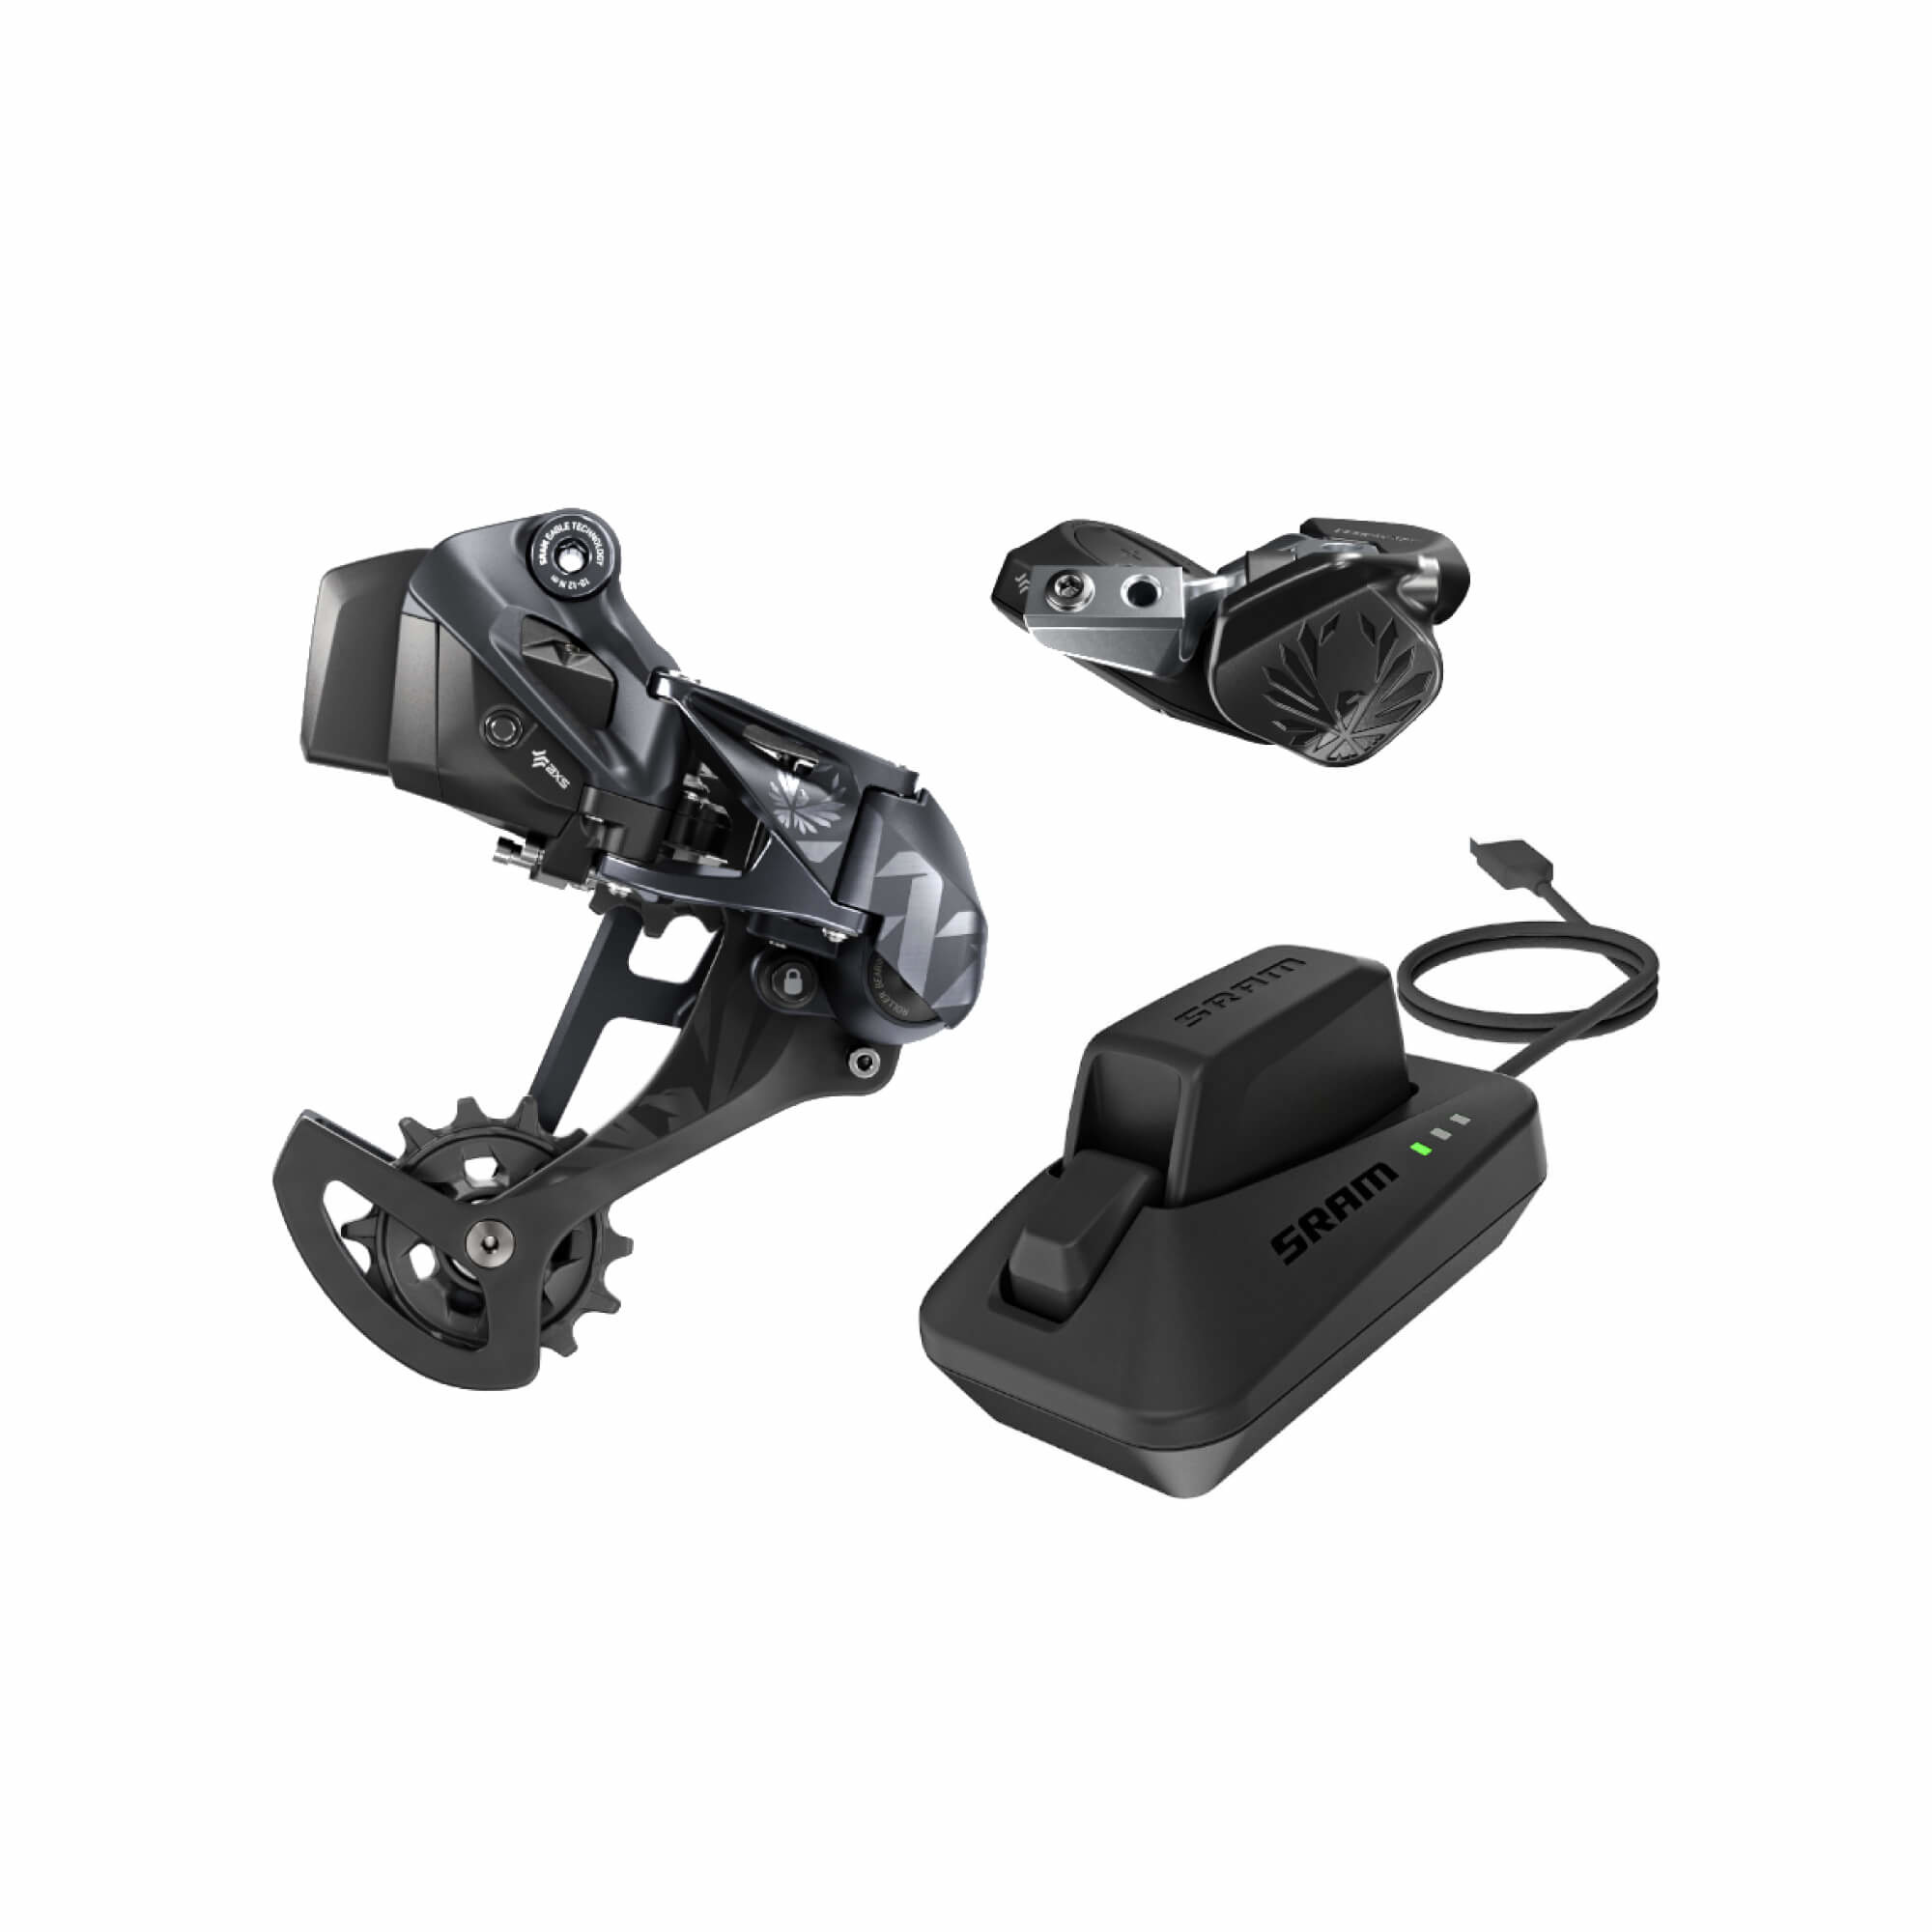 Upgrade Kit XX1 Eagle AXS - includes Rear Derailleur, Battery, Shifter & Charger-1